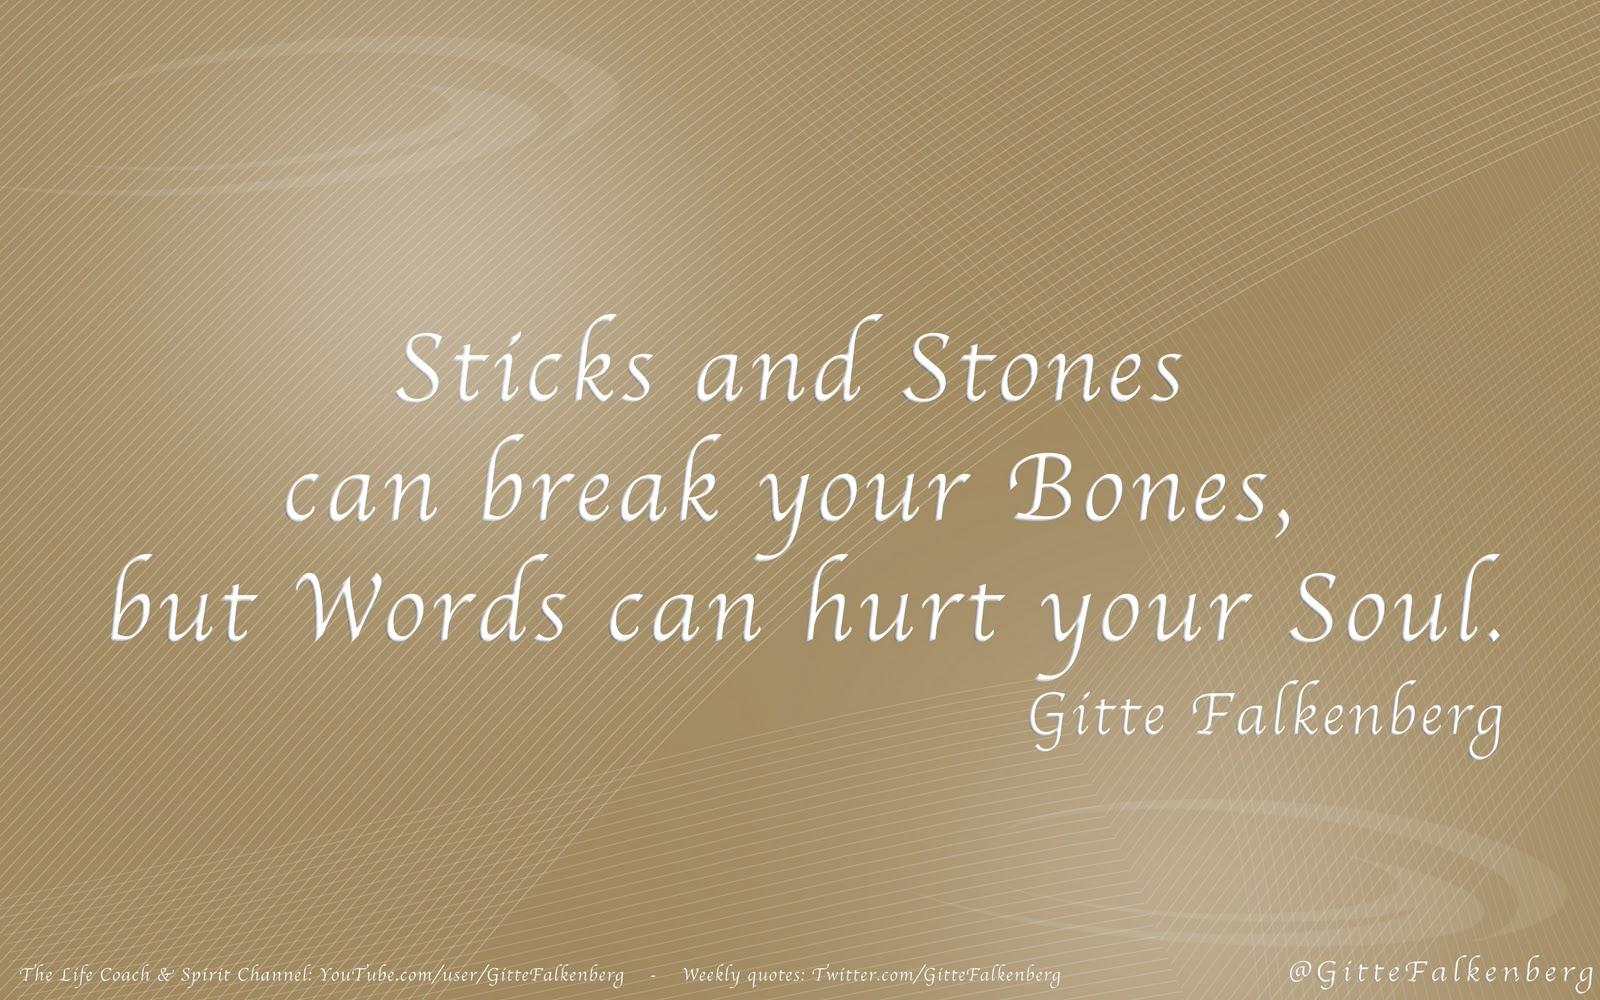 What do you do when sticks and stones do break your bones